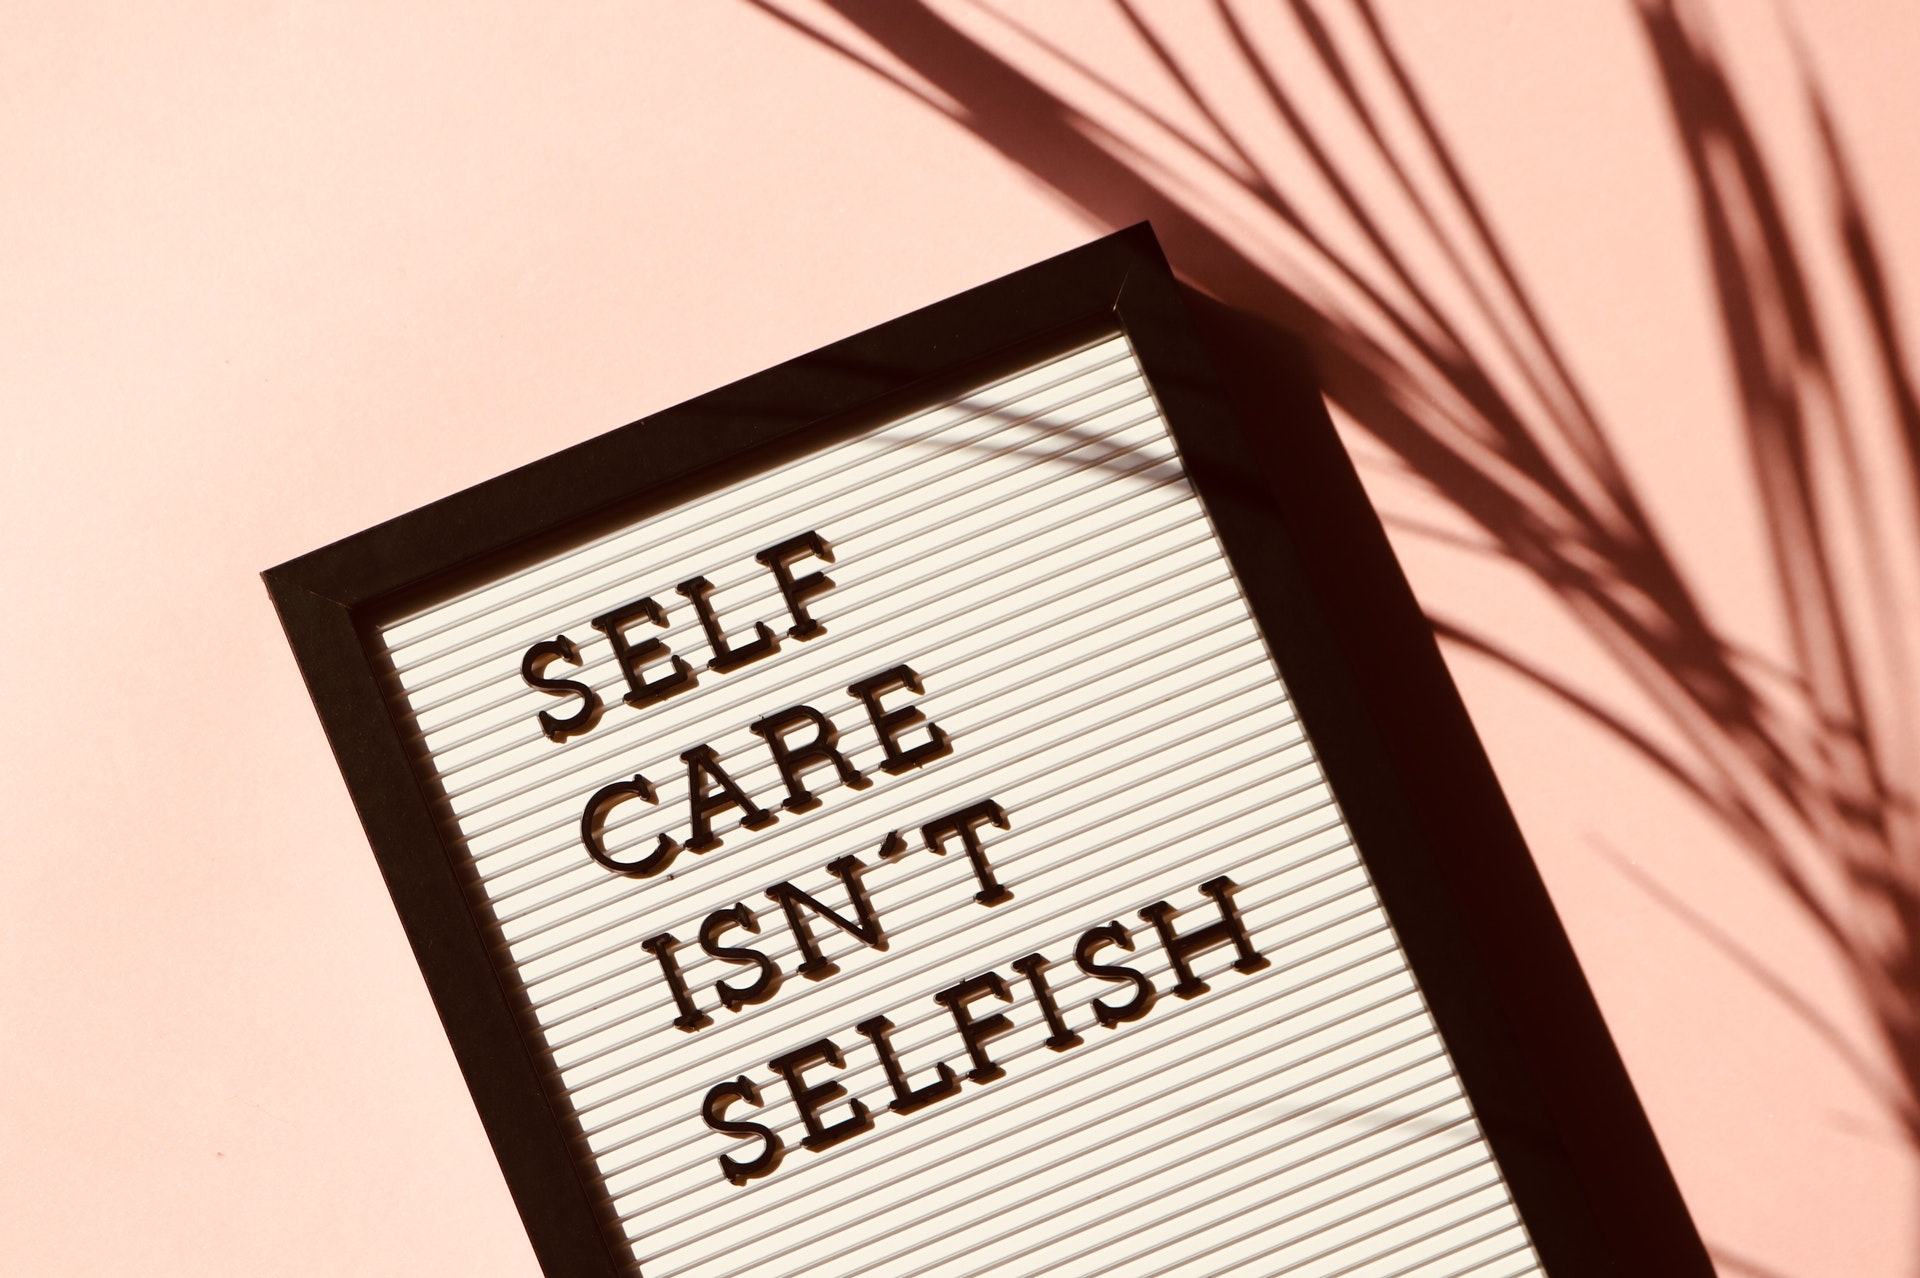 Caring for yourself is important